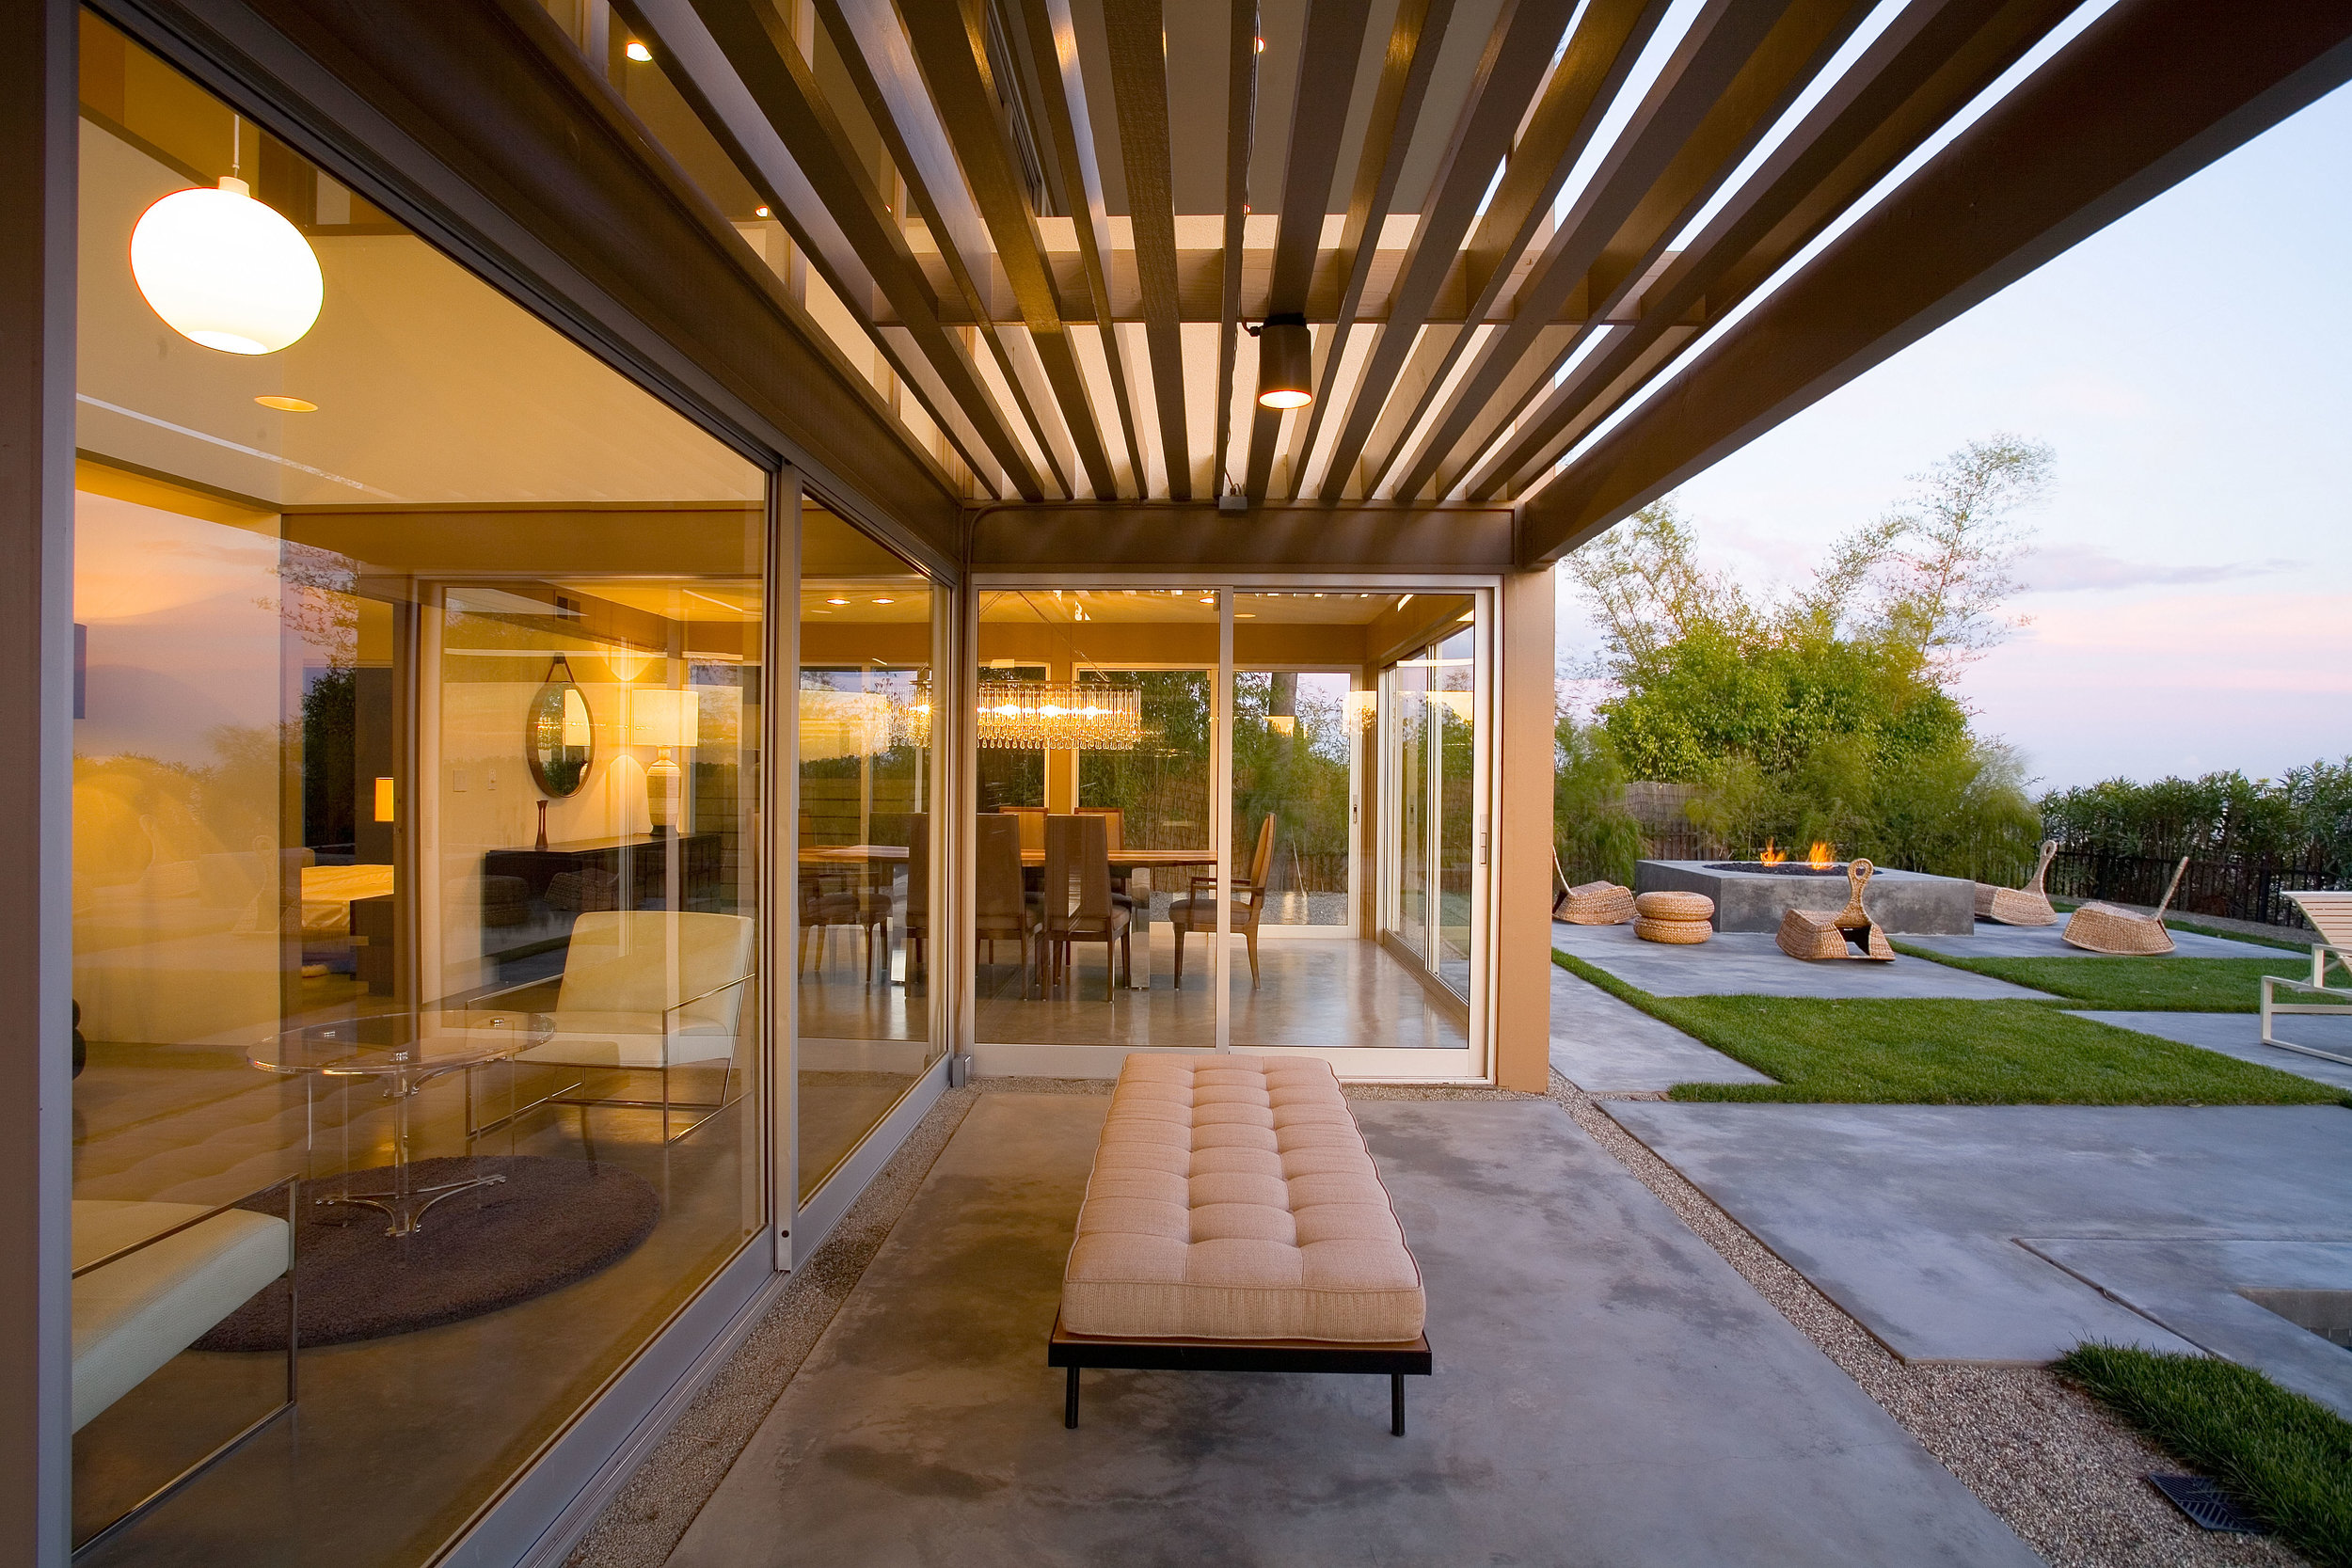 S.E.A.-Studio-Environmental-Architecture-David-Hertz-FAIA-Buff-Hensman-Bel-Air-historic-preservation-sustainable-regenerative-restorative-design-remodel-midcentury-modern-case-study-house-vintage-residential-contemporary-addition-hollywood-hills-3.jpg